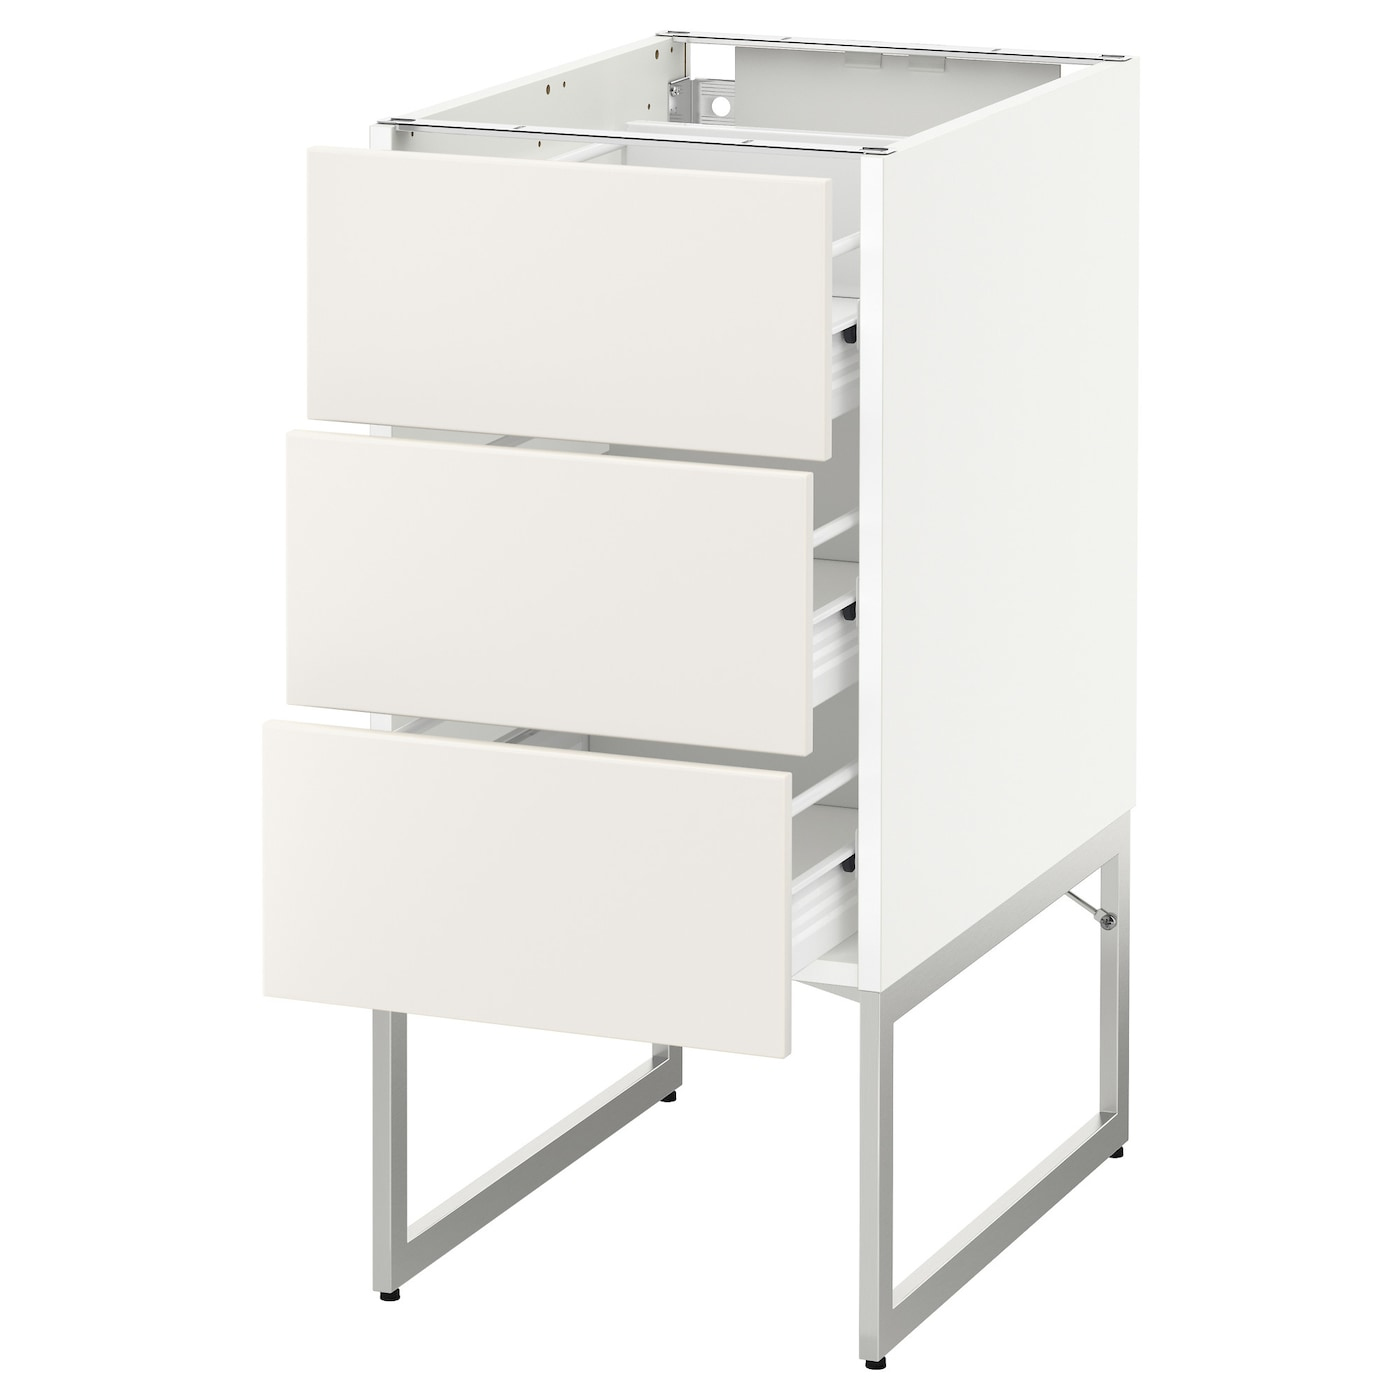 IKEA METOD/FÖRVARA base cab 3 fronts/3 medium drawers Sturdy frame construction, 18 mm thick.